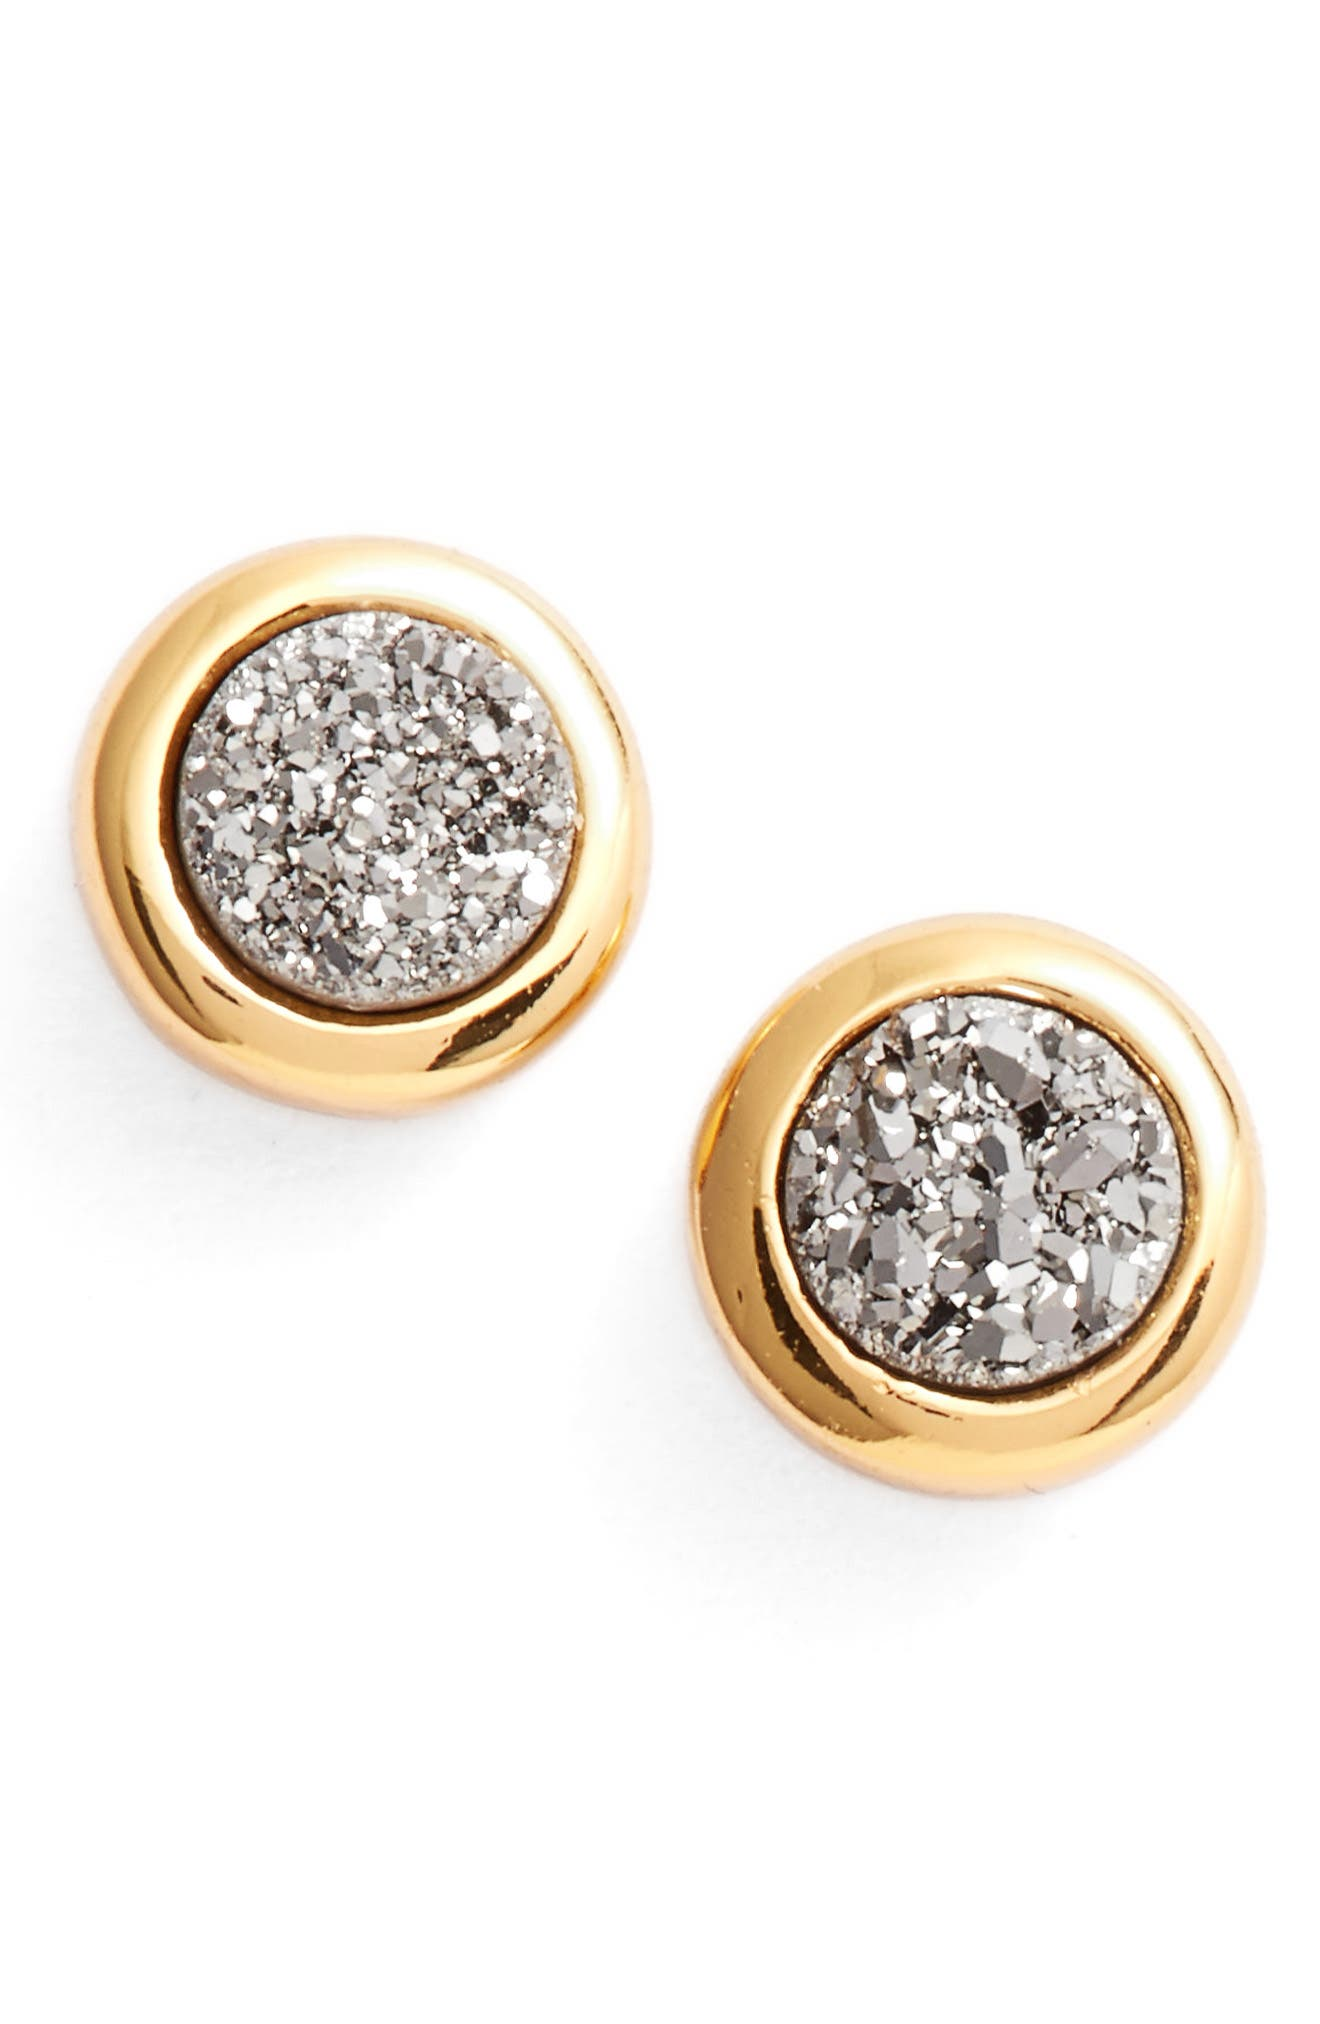 Astoria Drusy Stud Earrings,                             Main thumbnail 1, color,                             Silver Druzy/ Gold